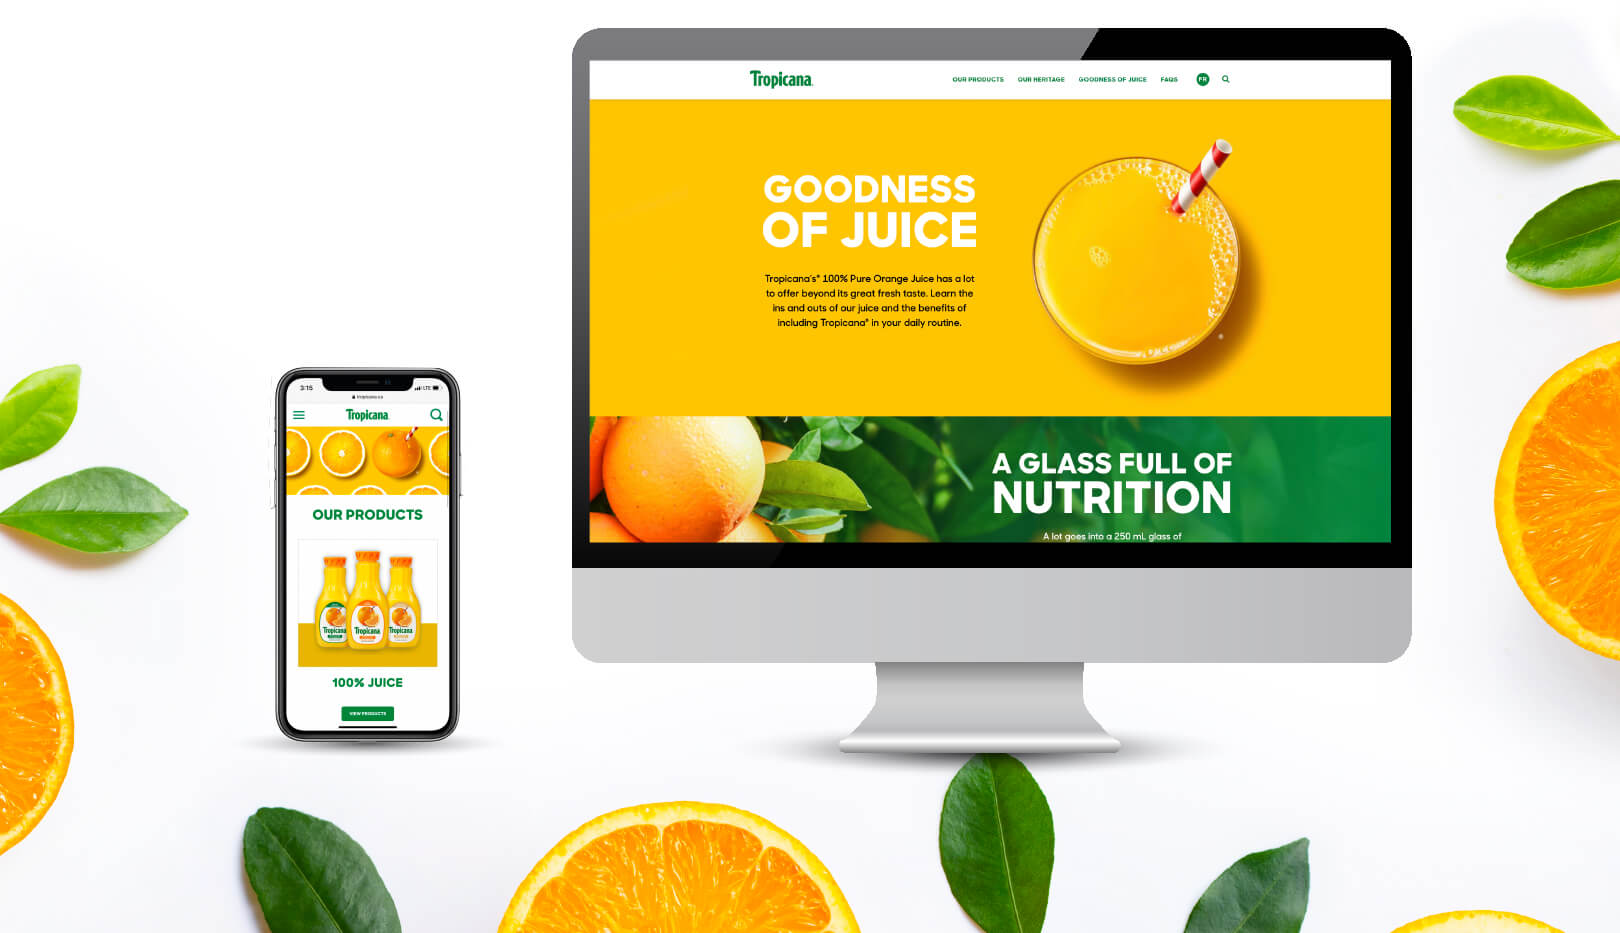 New Tropicana Website shown on computer desktop and mobile phone